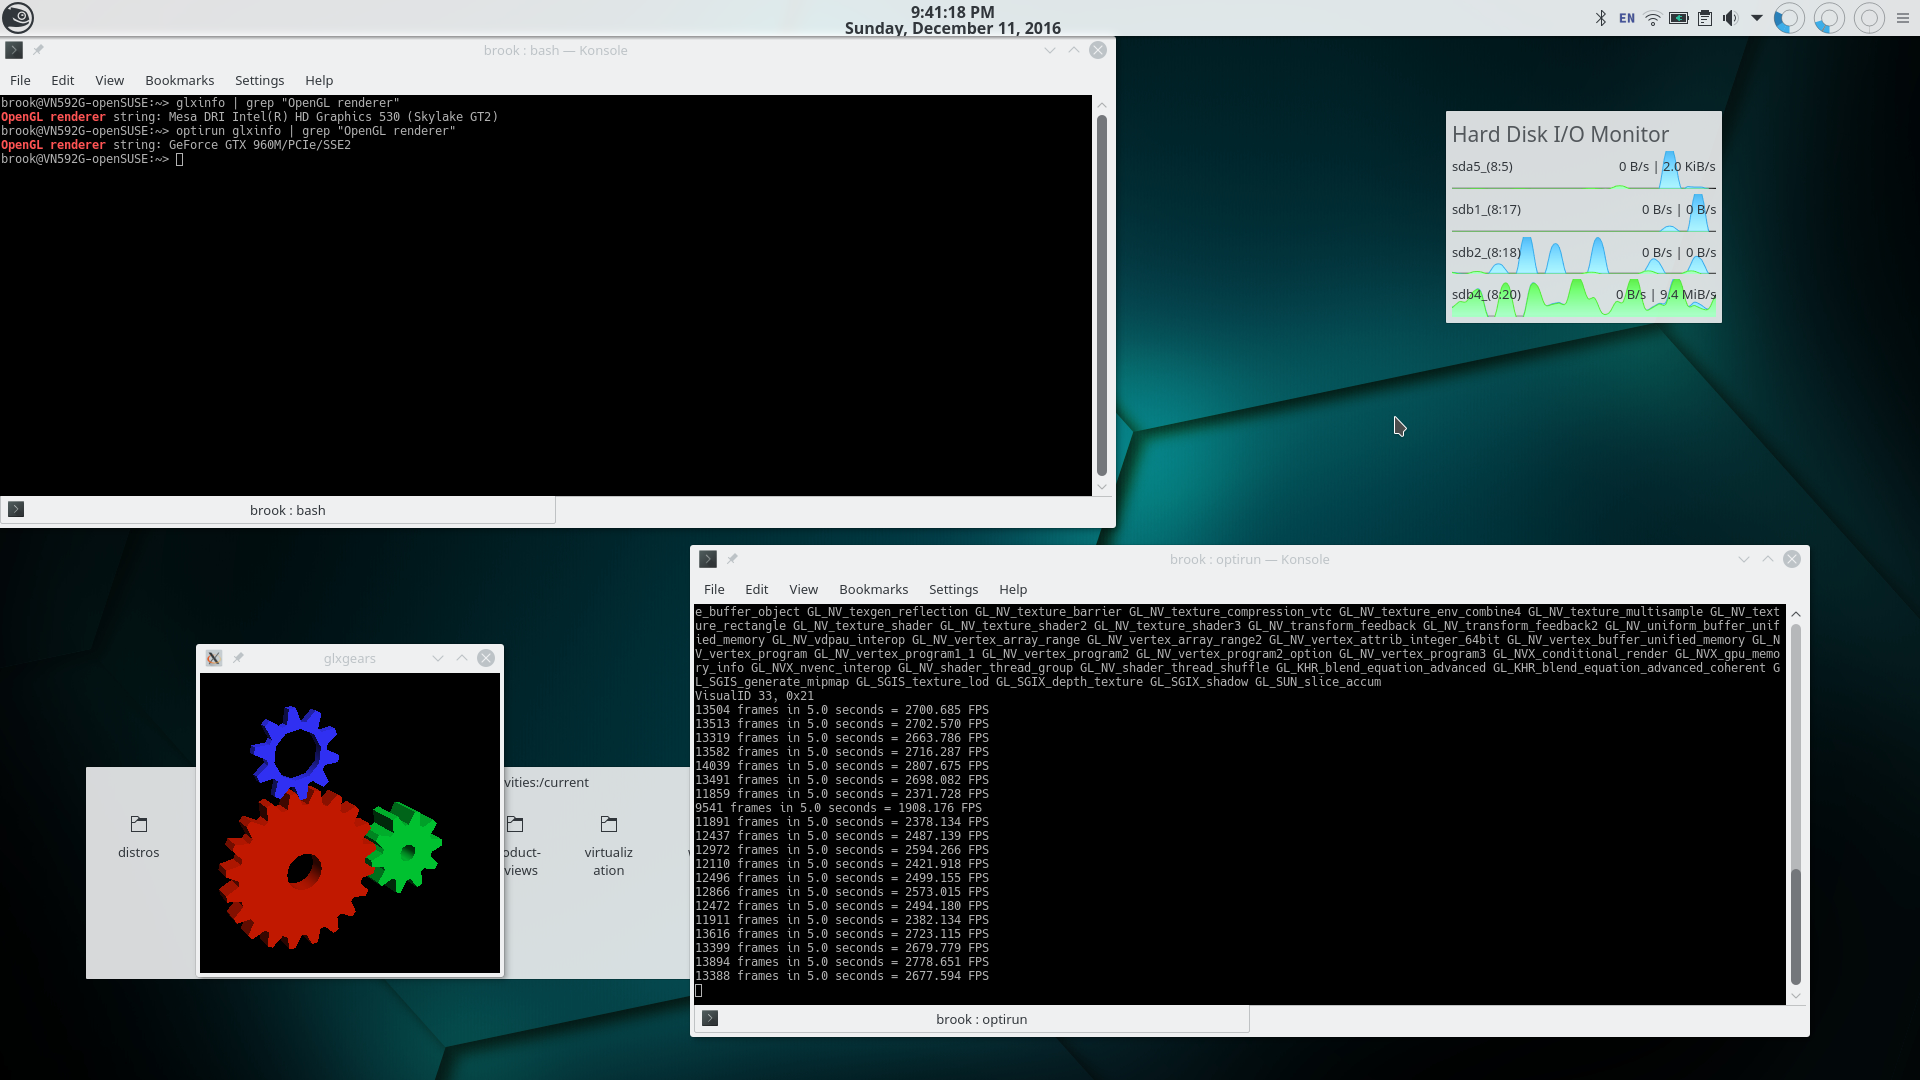 Verifying Proper Installation and Configuration of Intel/Nvidia Hybrid Graphics on openSUSE Tumbleweed. The screenshot shows openSUSE Tumbleweed with KDE Plasma 5. In the top left corner a <samp>Konsole</samp> terminal is showing the output of glxinfo | grep 'OpenGL renderer' and glxinfo | grep 'OpenGL renderer'. In the first case glxinfo is using the default graphics processor and shows that the Intel HD Graphics 530 is the 'OpenGL renderer'. In the second case glxinfo shows that the 'OpenGL renderer' is the [Nvidia] GeForce GTX 960M -- the discrete processor. The <samp>Konsole</samp> terminal at the lower right shows the framerates when using the discrete graphics card -- over approximately forty times higher framrates.